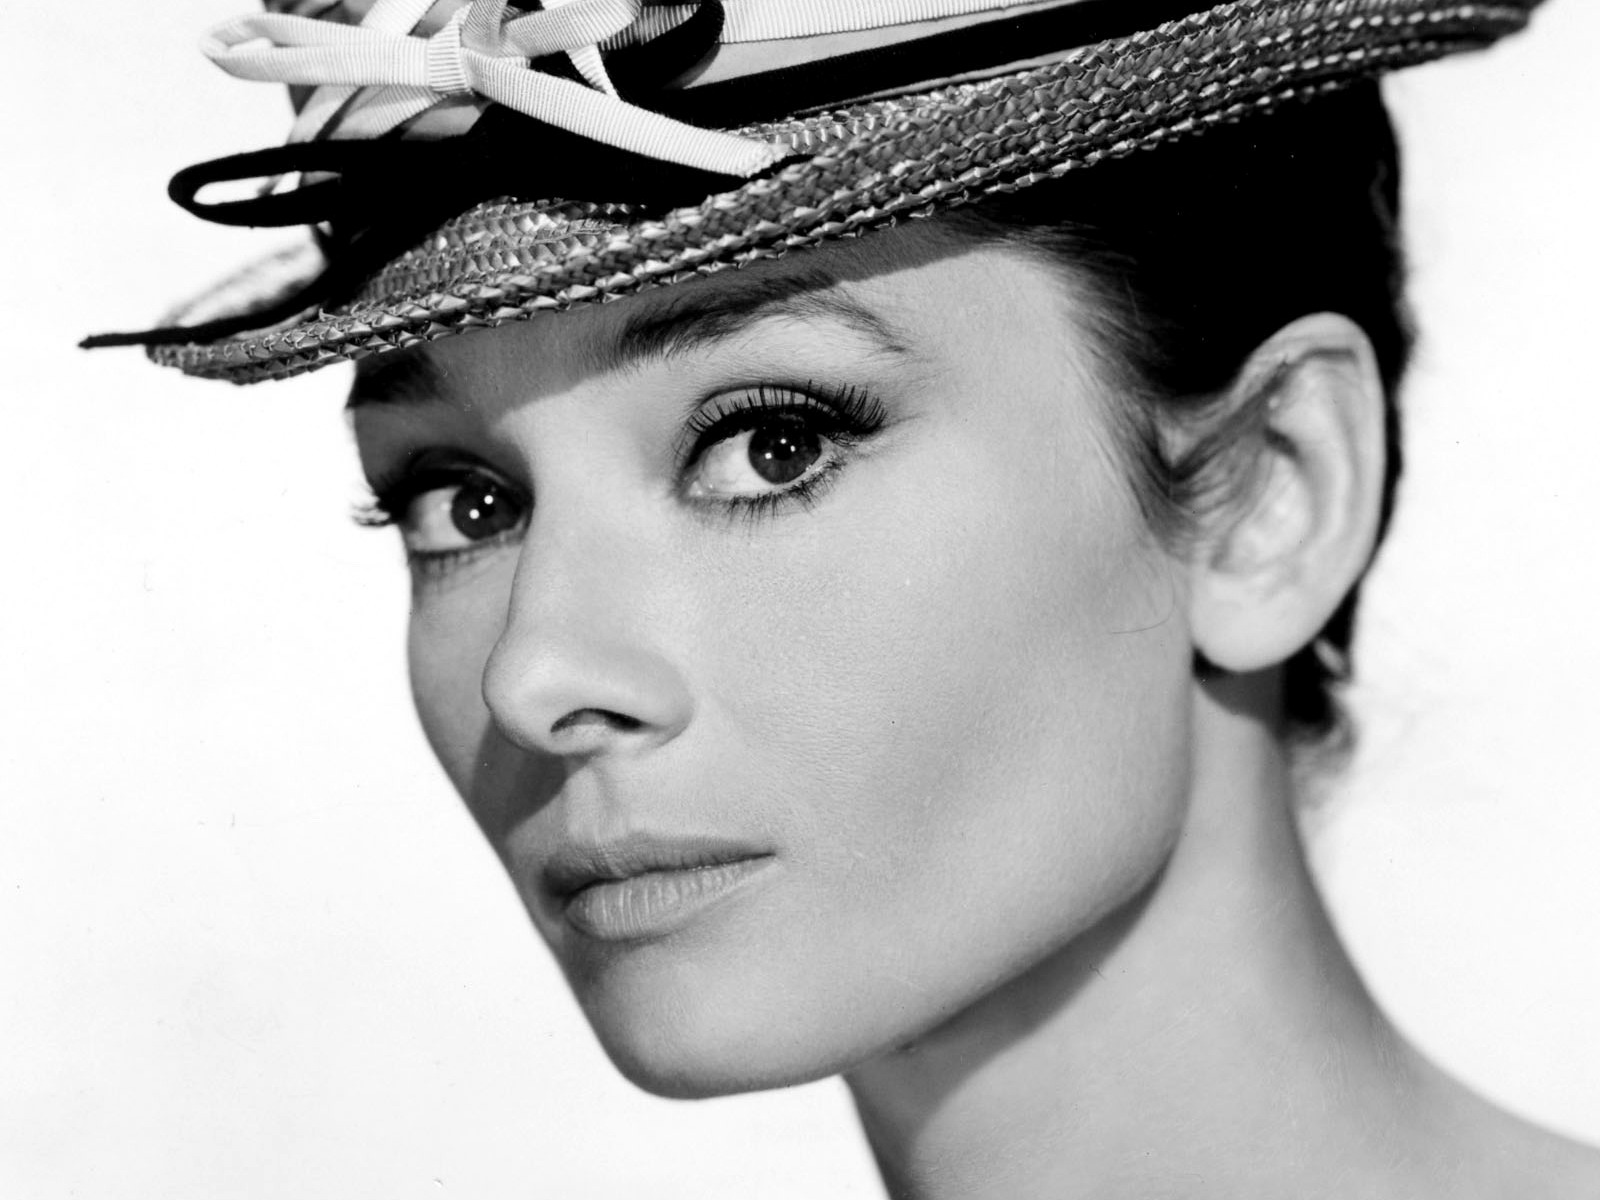 audrey hepburn Find and save ideas about audrey hepburn style on pinterest | see more ideas about audrey hepburn fashion, audrey hepburn style hair and audrey hepburn.